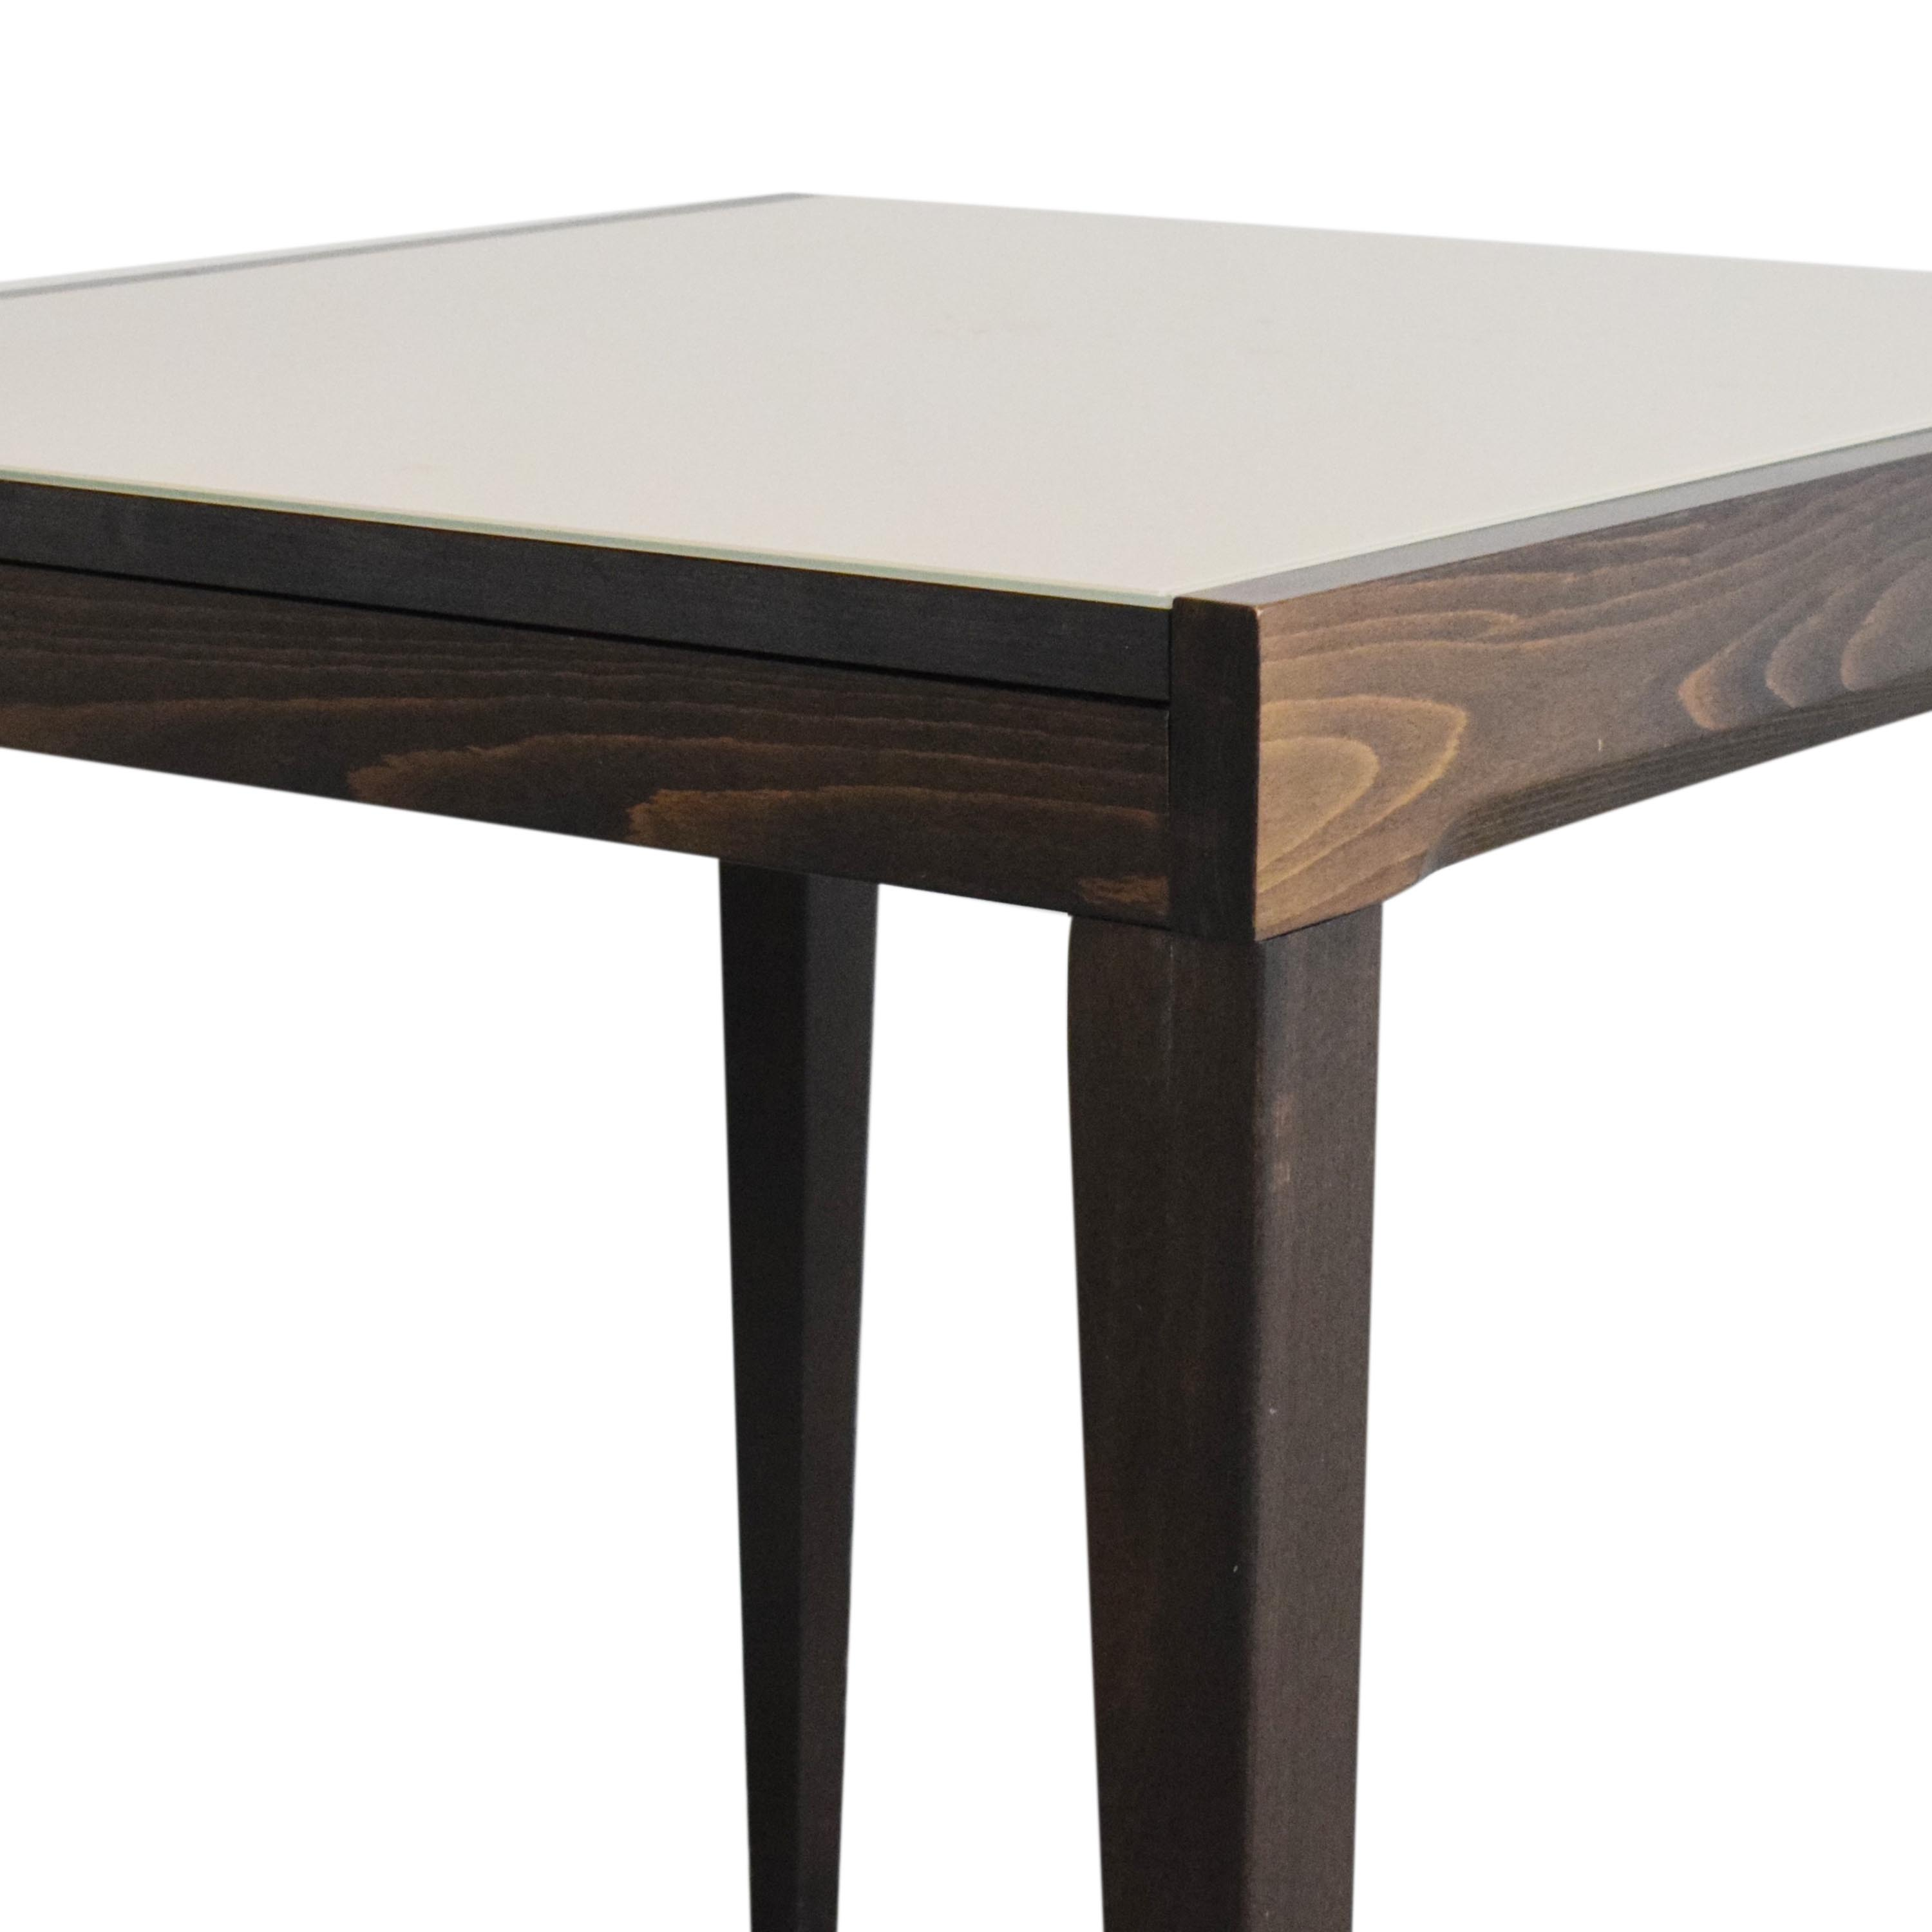 Macy's Macy's Square Extendable Dining Table ma